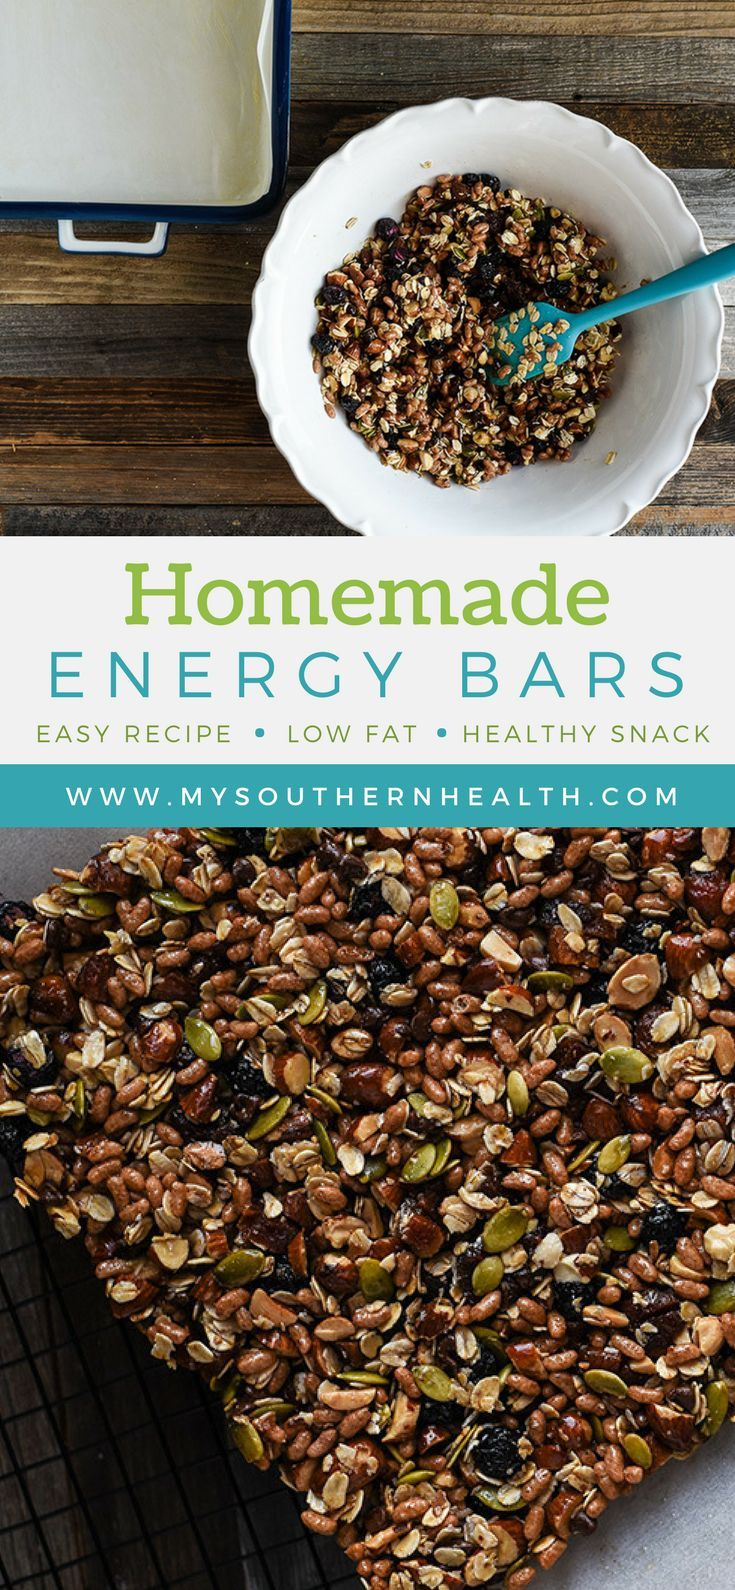 Crunchy, chewy, satisfying — these healthy, homemade energy bars are nutritious and versatile. Get the recipe here! #mysouthernhealth #homemadeenergybars #energybarrecipe #energybars